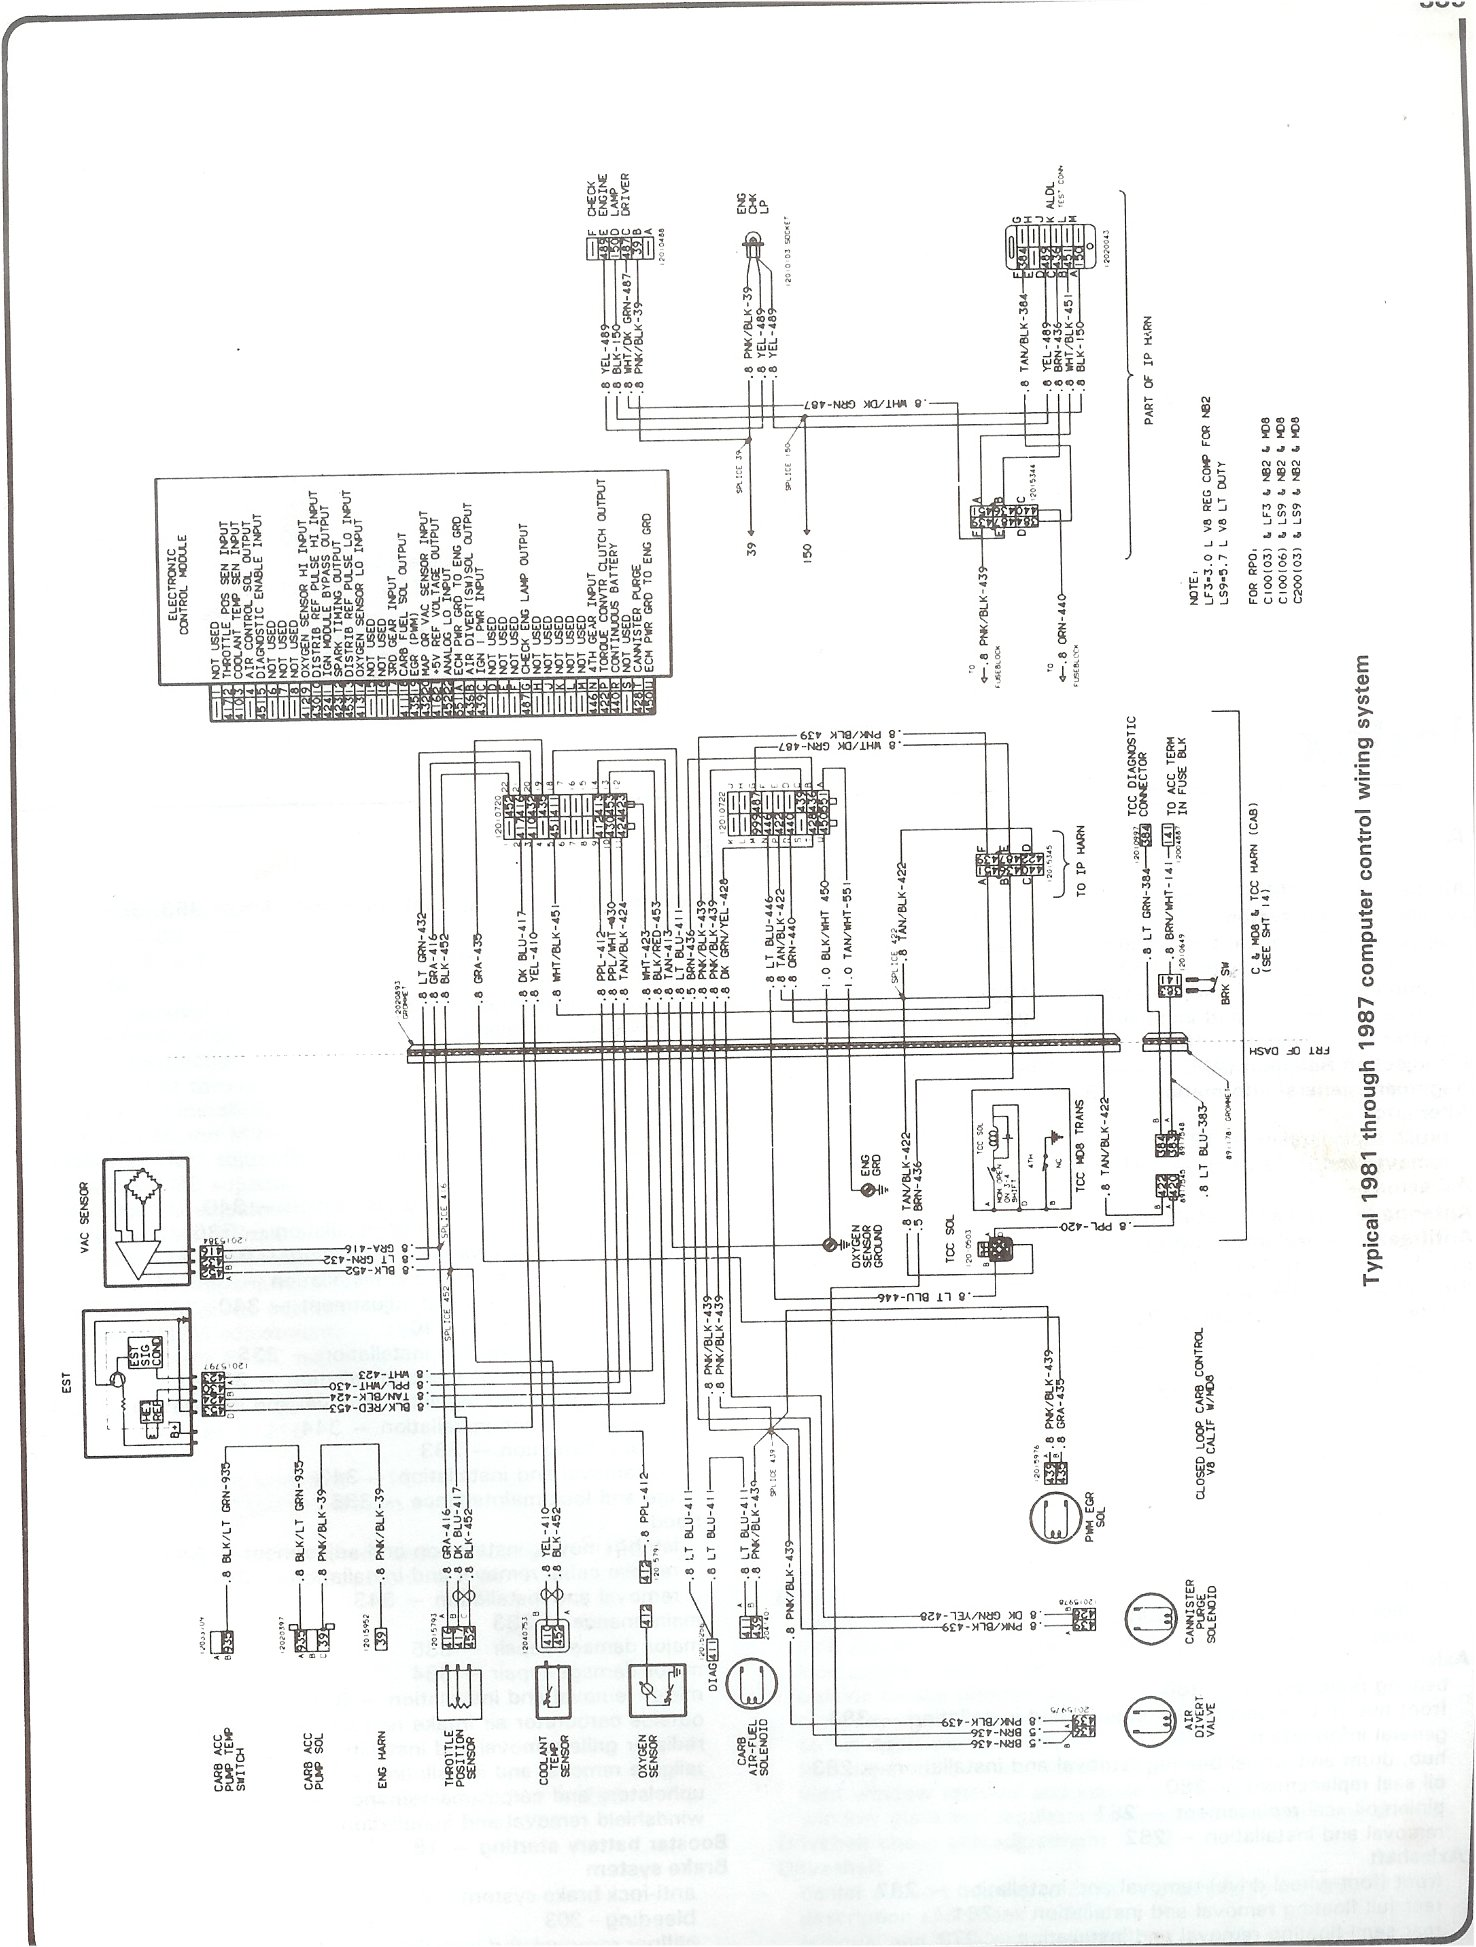 1987 chevy truck wiring diagram chevrolet v8 trucks 1981 daily 1970 Chevy C10 Wiring-Diagram